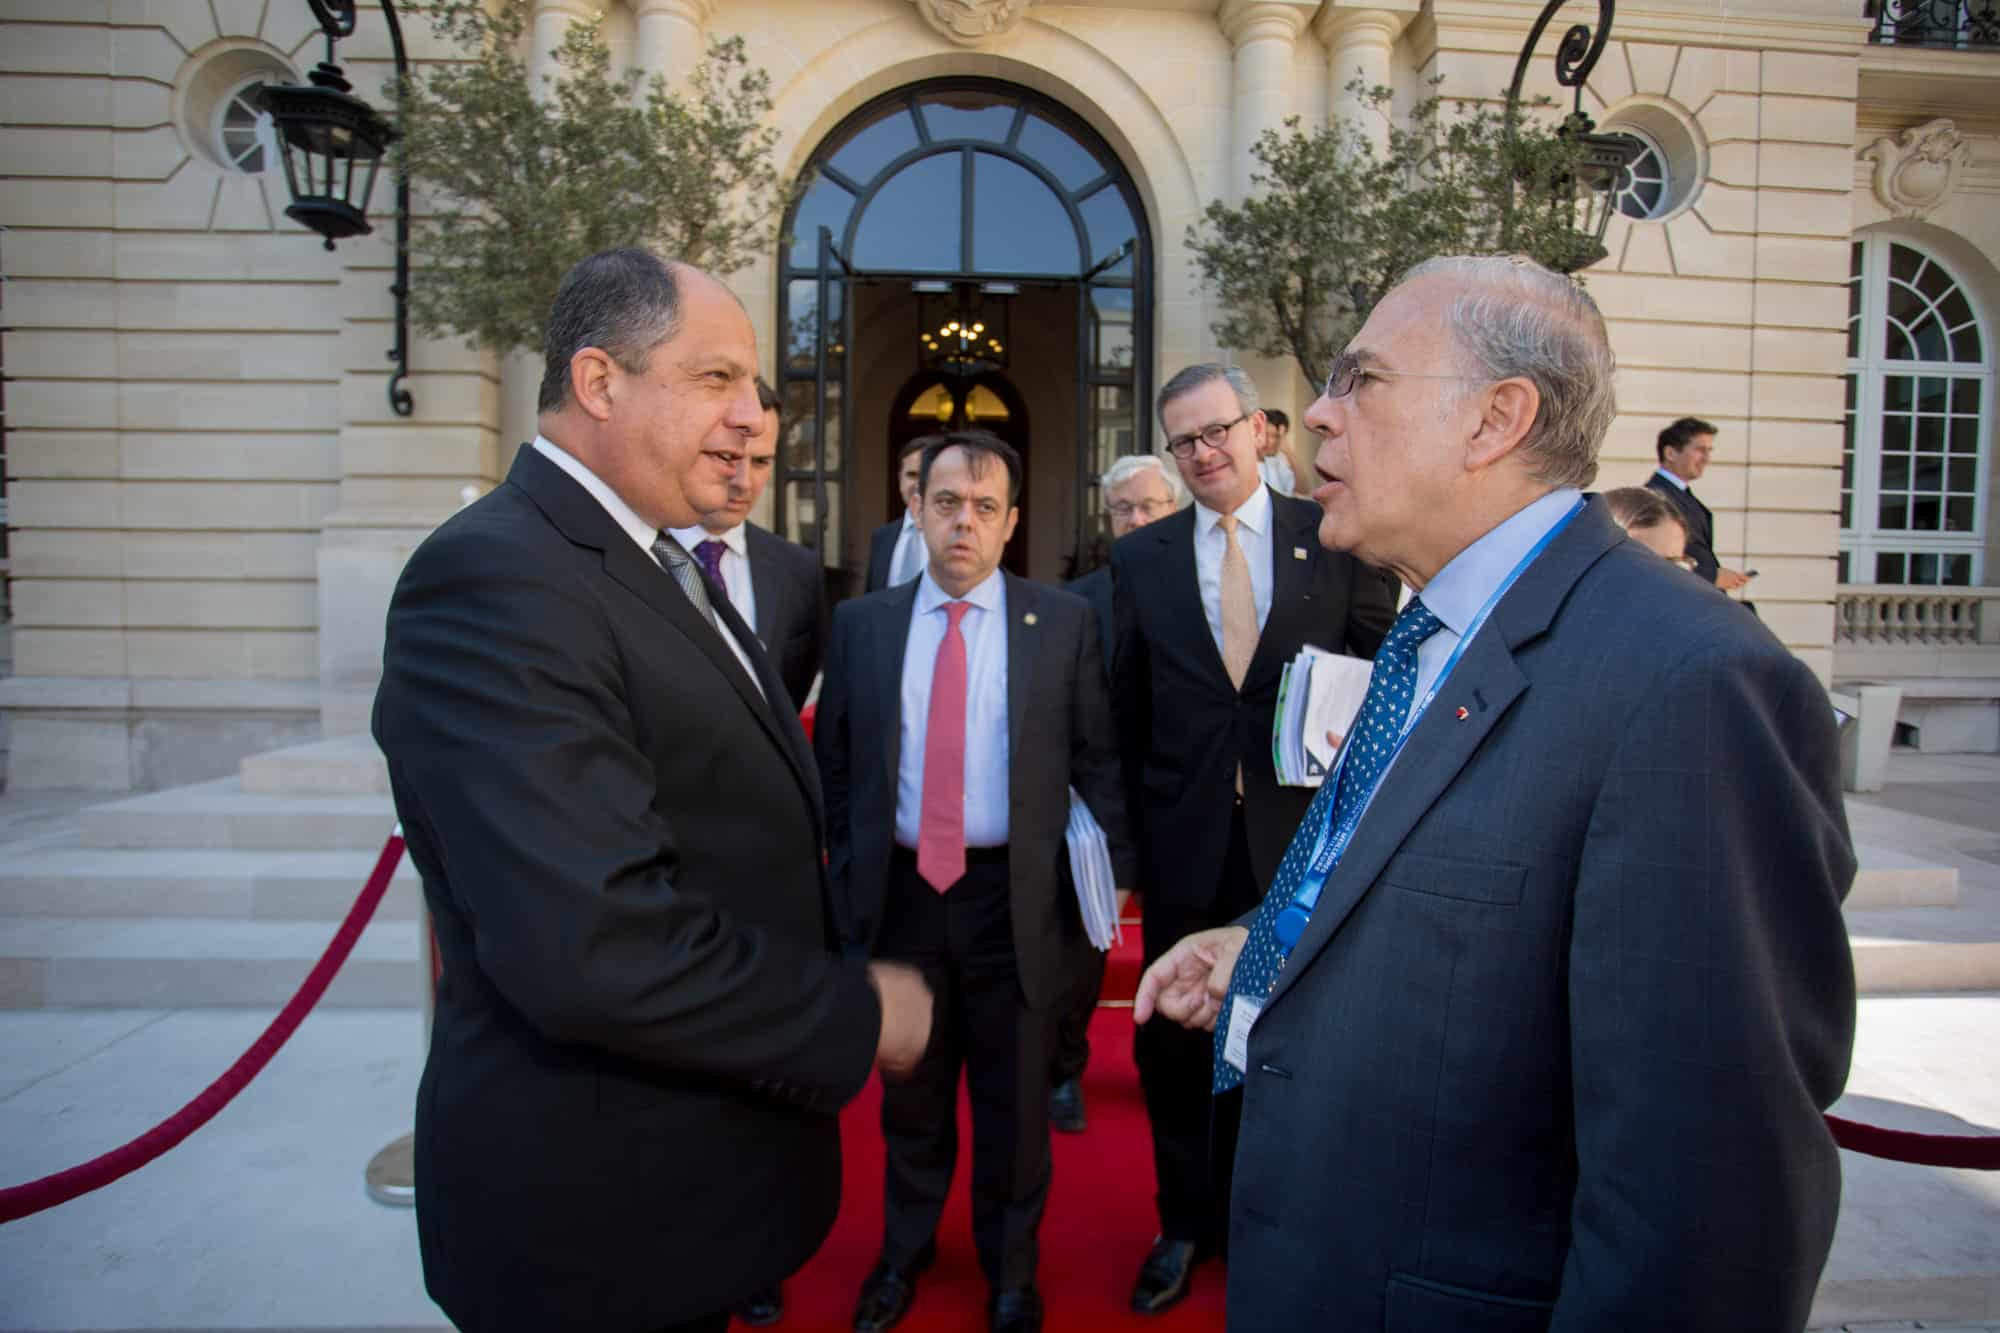 President Luis Guillermo Solís (left) and OECD Secretary-General Ángel Gurría (right) after a meeting in Paris on June 5, 2015.